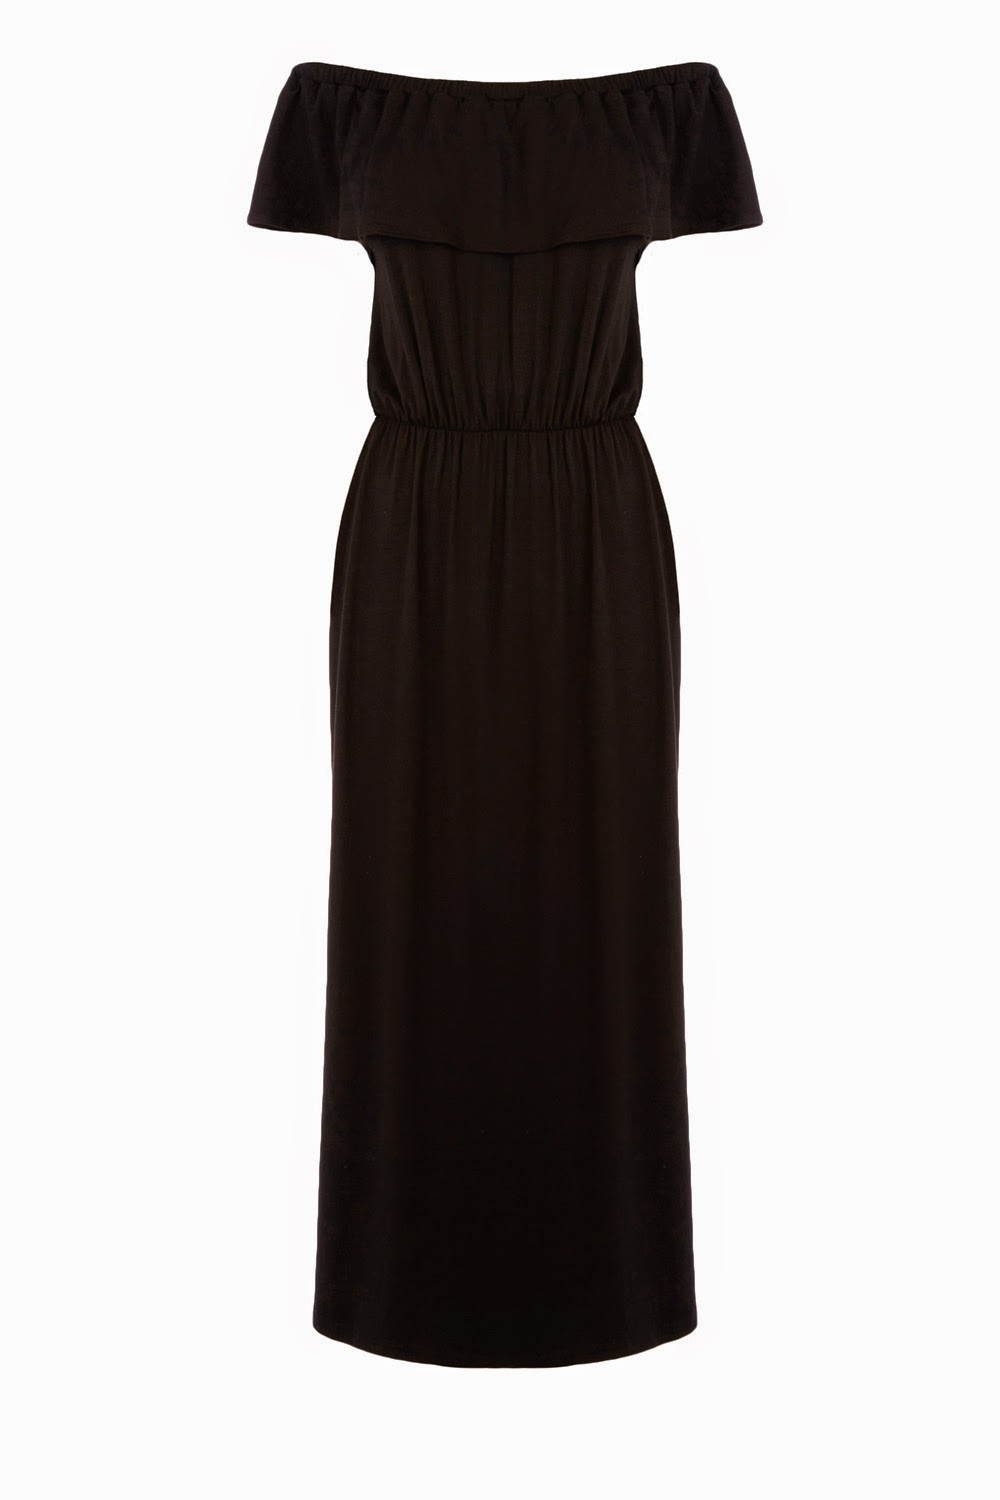 black gypsy maxi dress, warehouse off shoulder black dress,